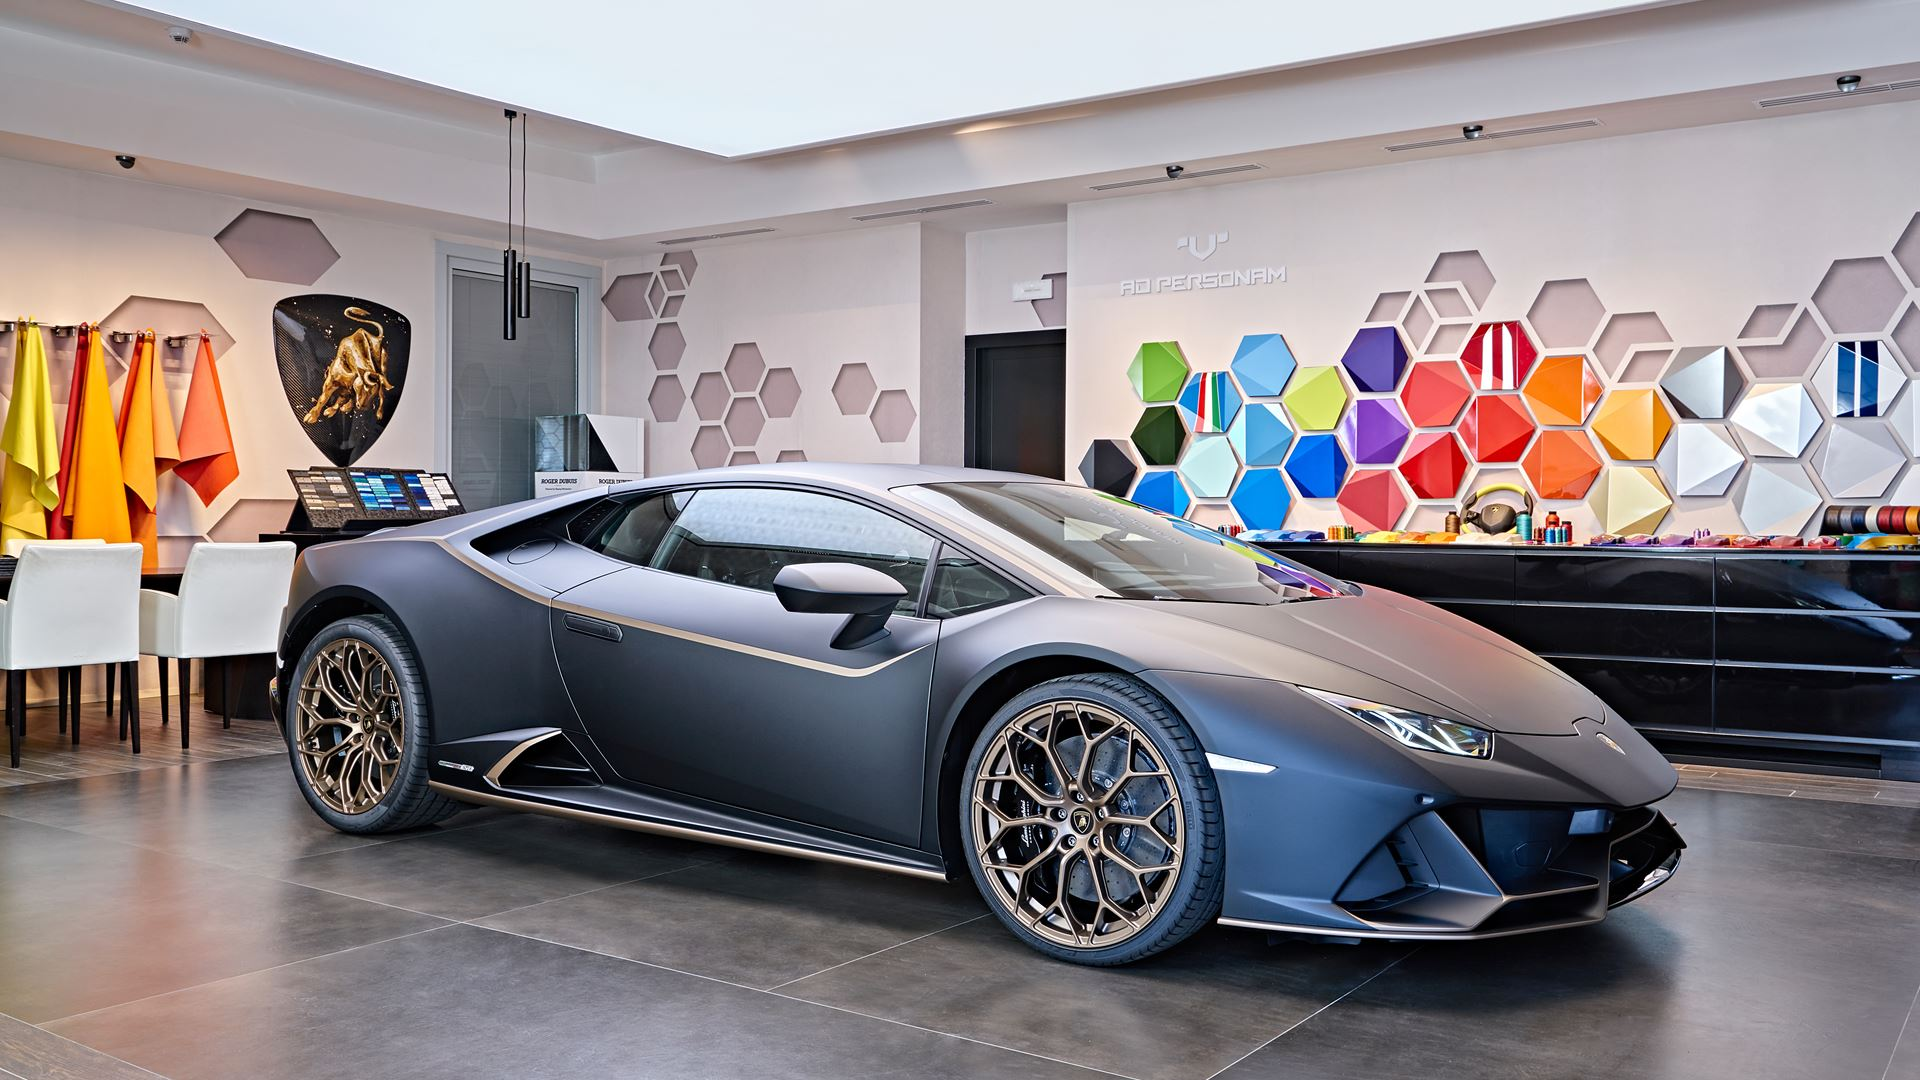 Lamborghini Mexico Commissions Special Edition Models To Commemorate 10 Years in the Region - Image 2